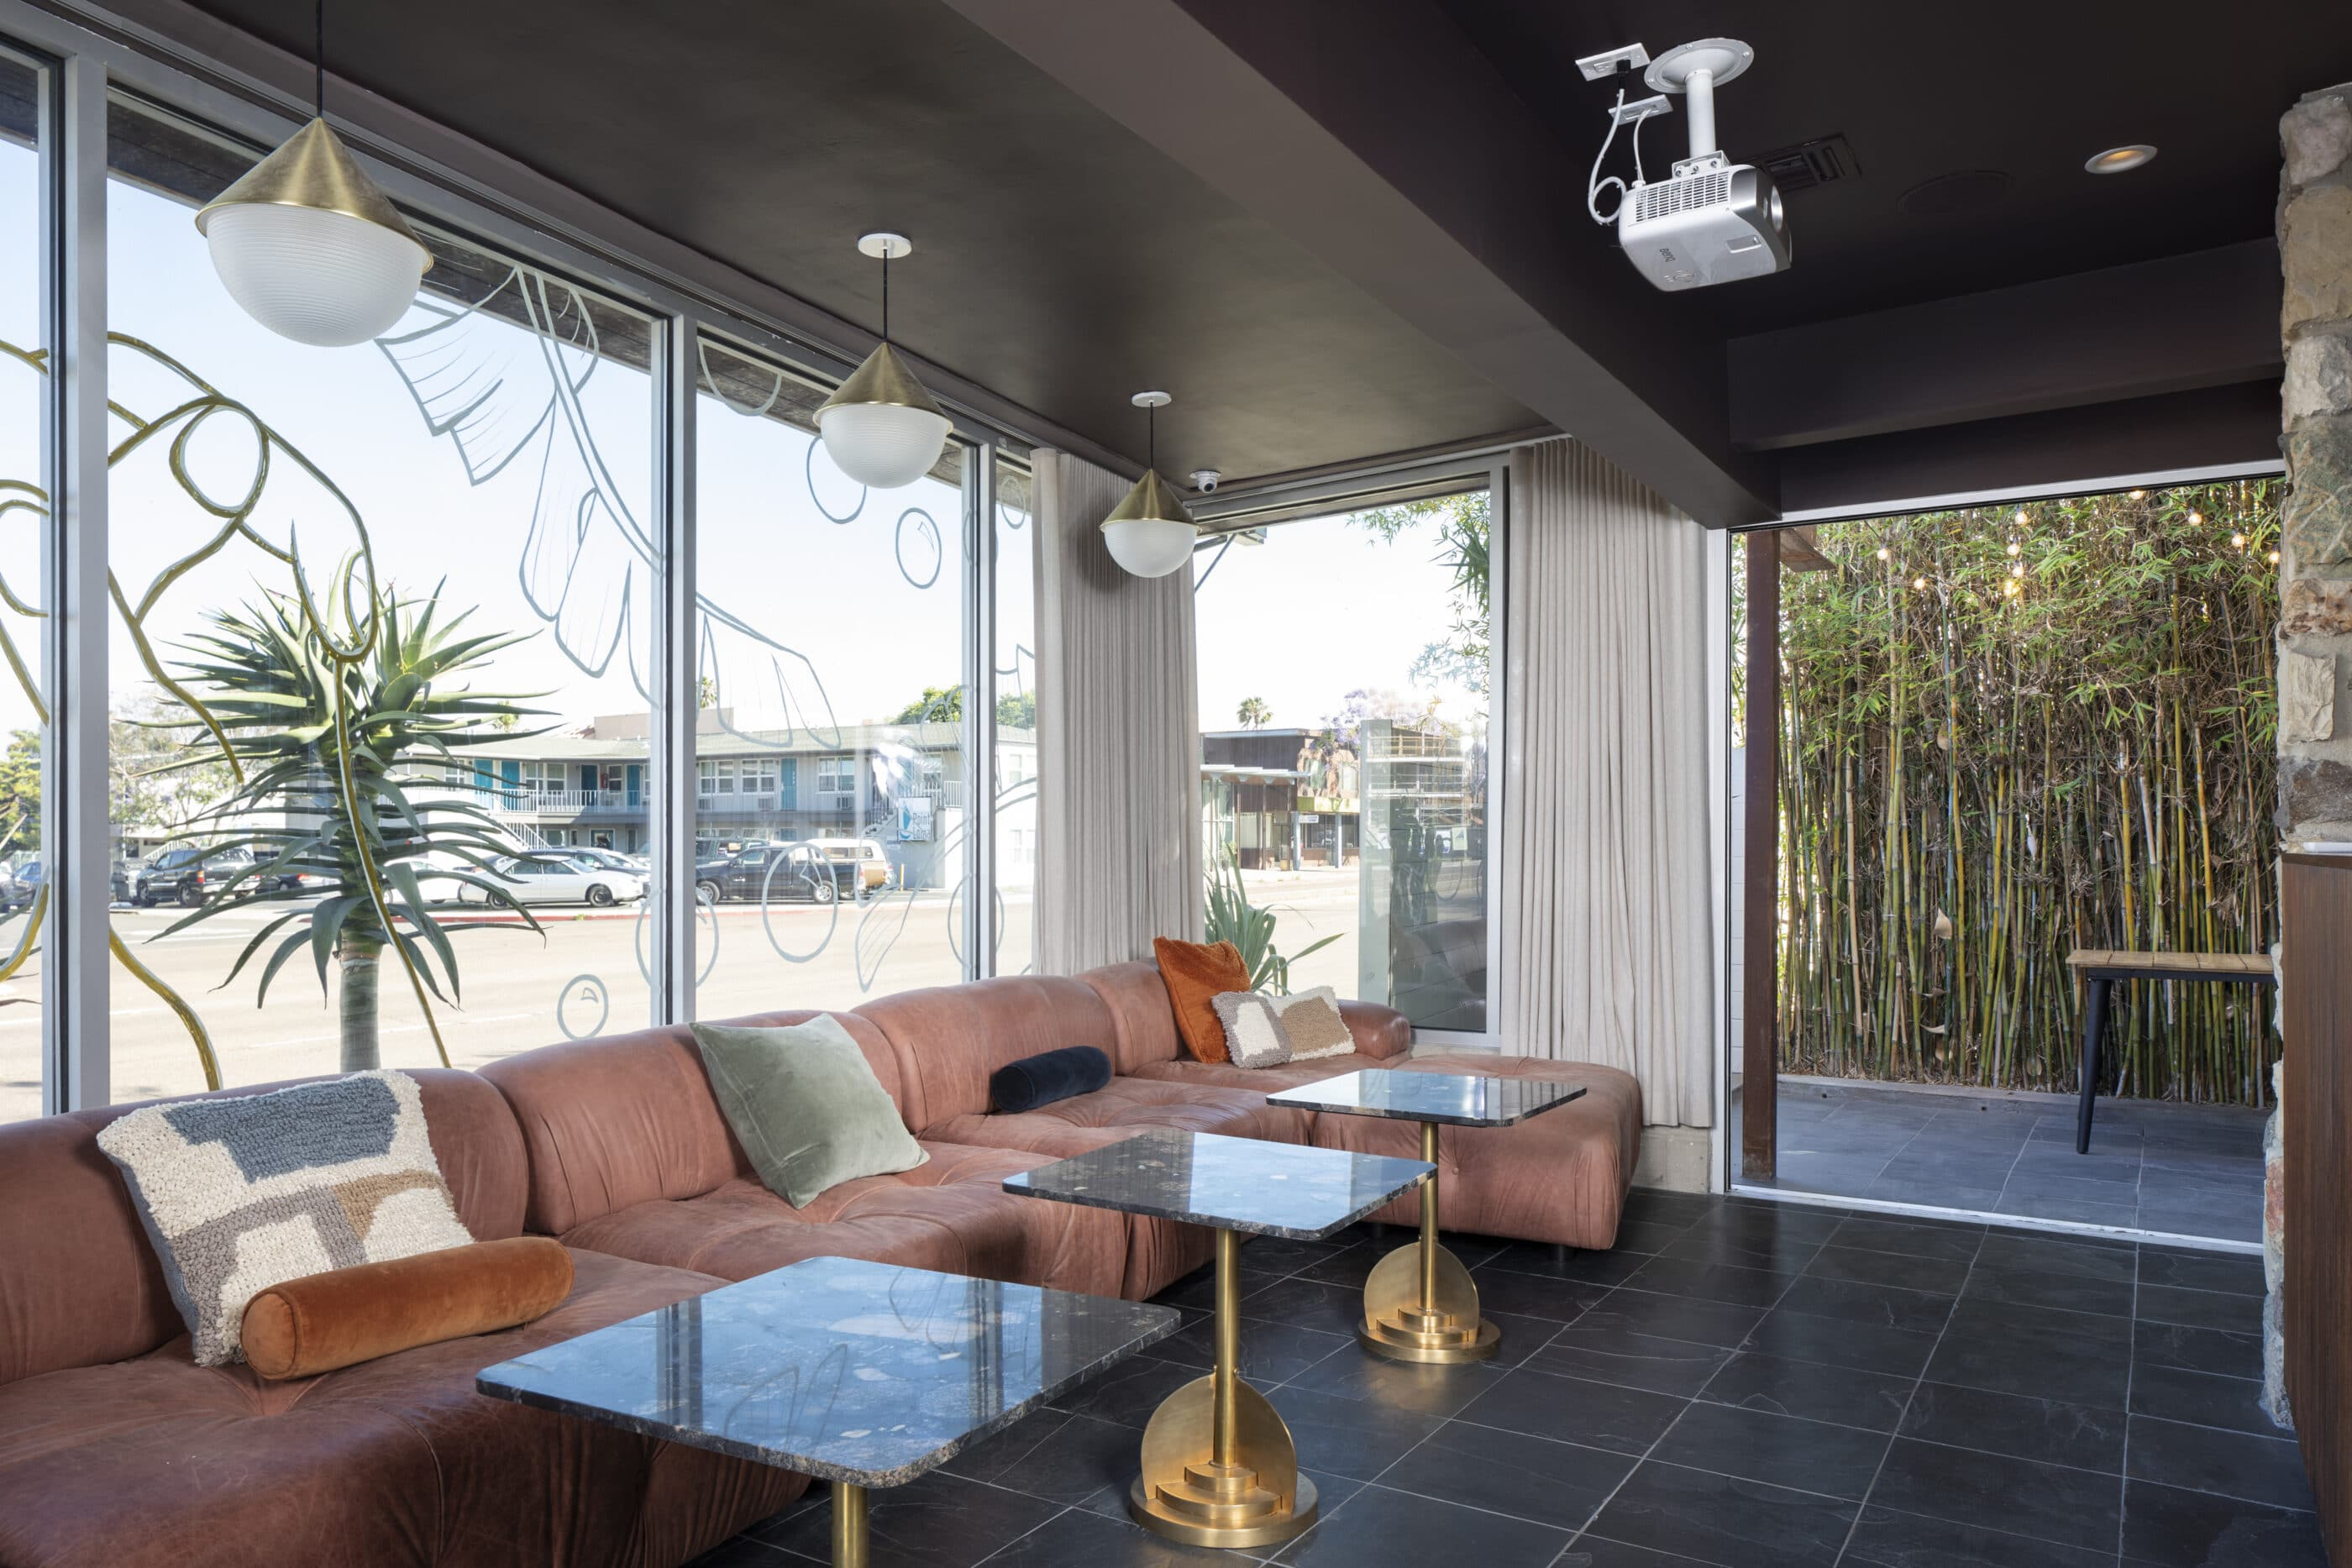 The lounge in the front of the hotel with a view of Rosecrans Street in the background.